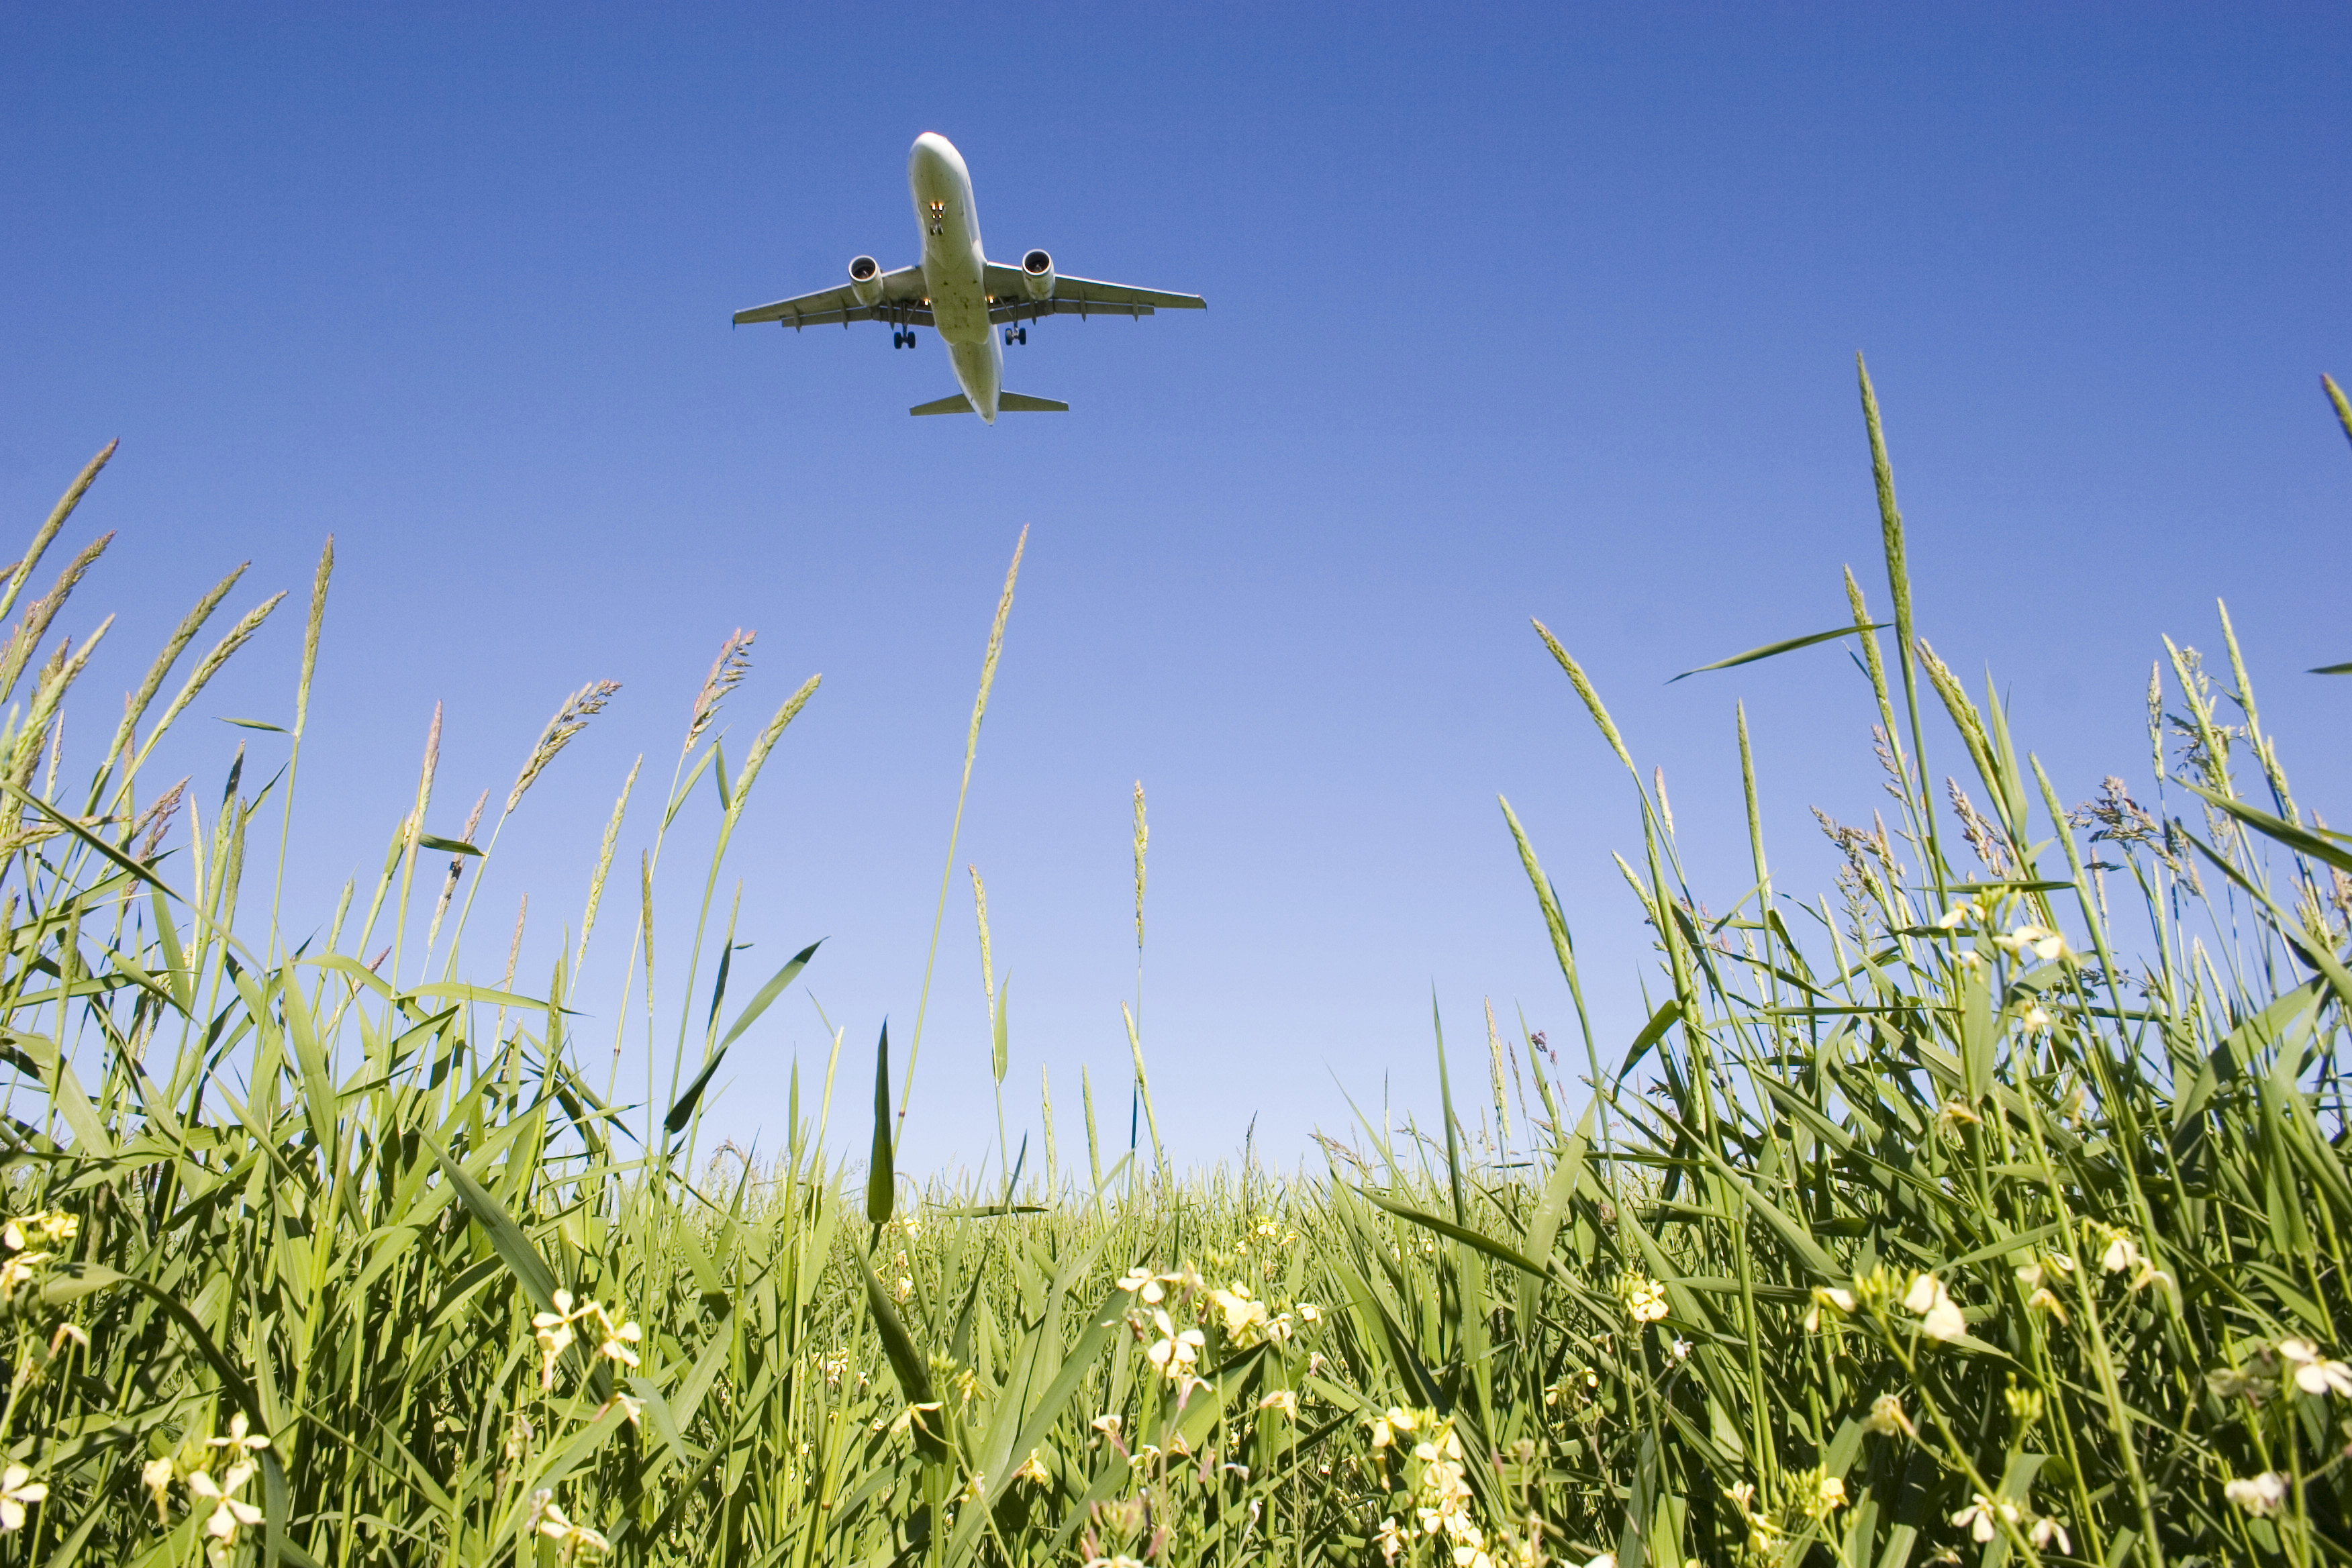 An airplane flying over a grassy field. (stock image)